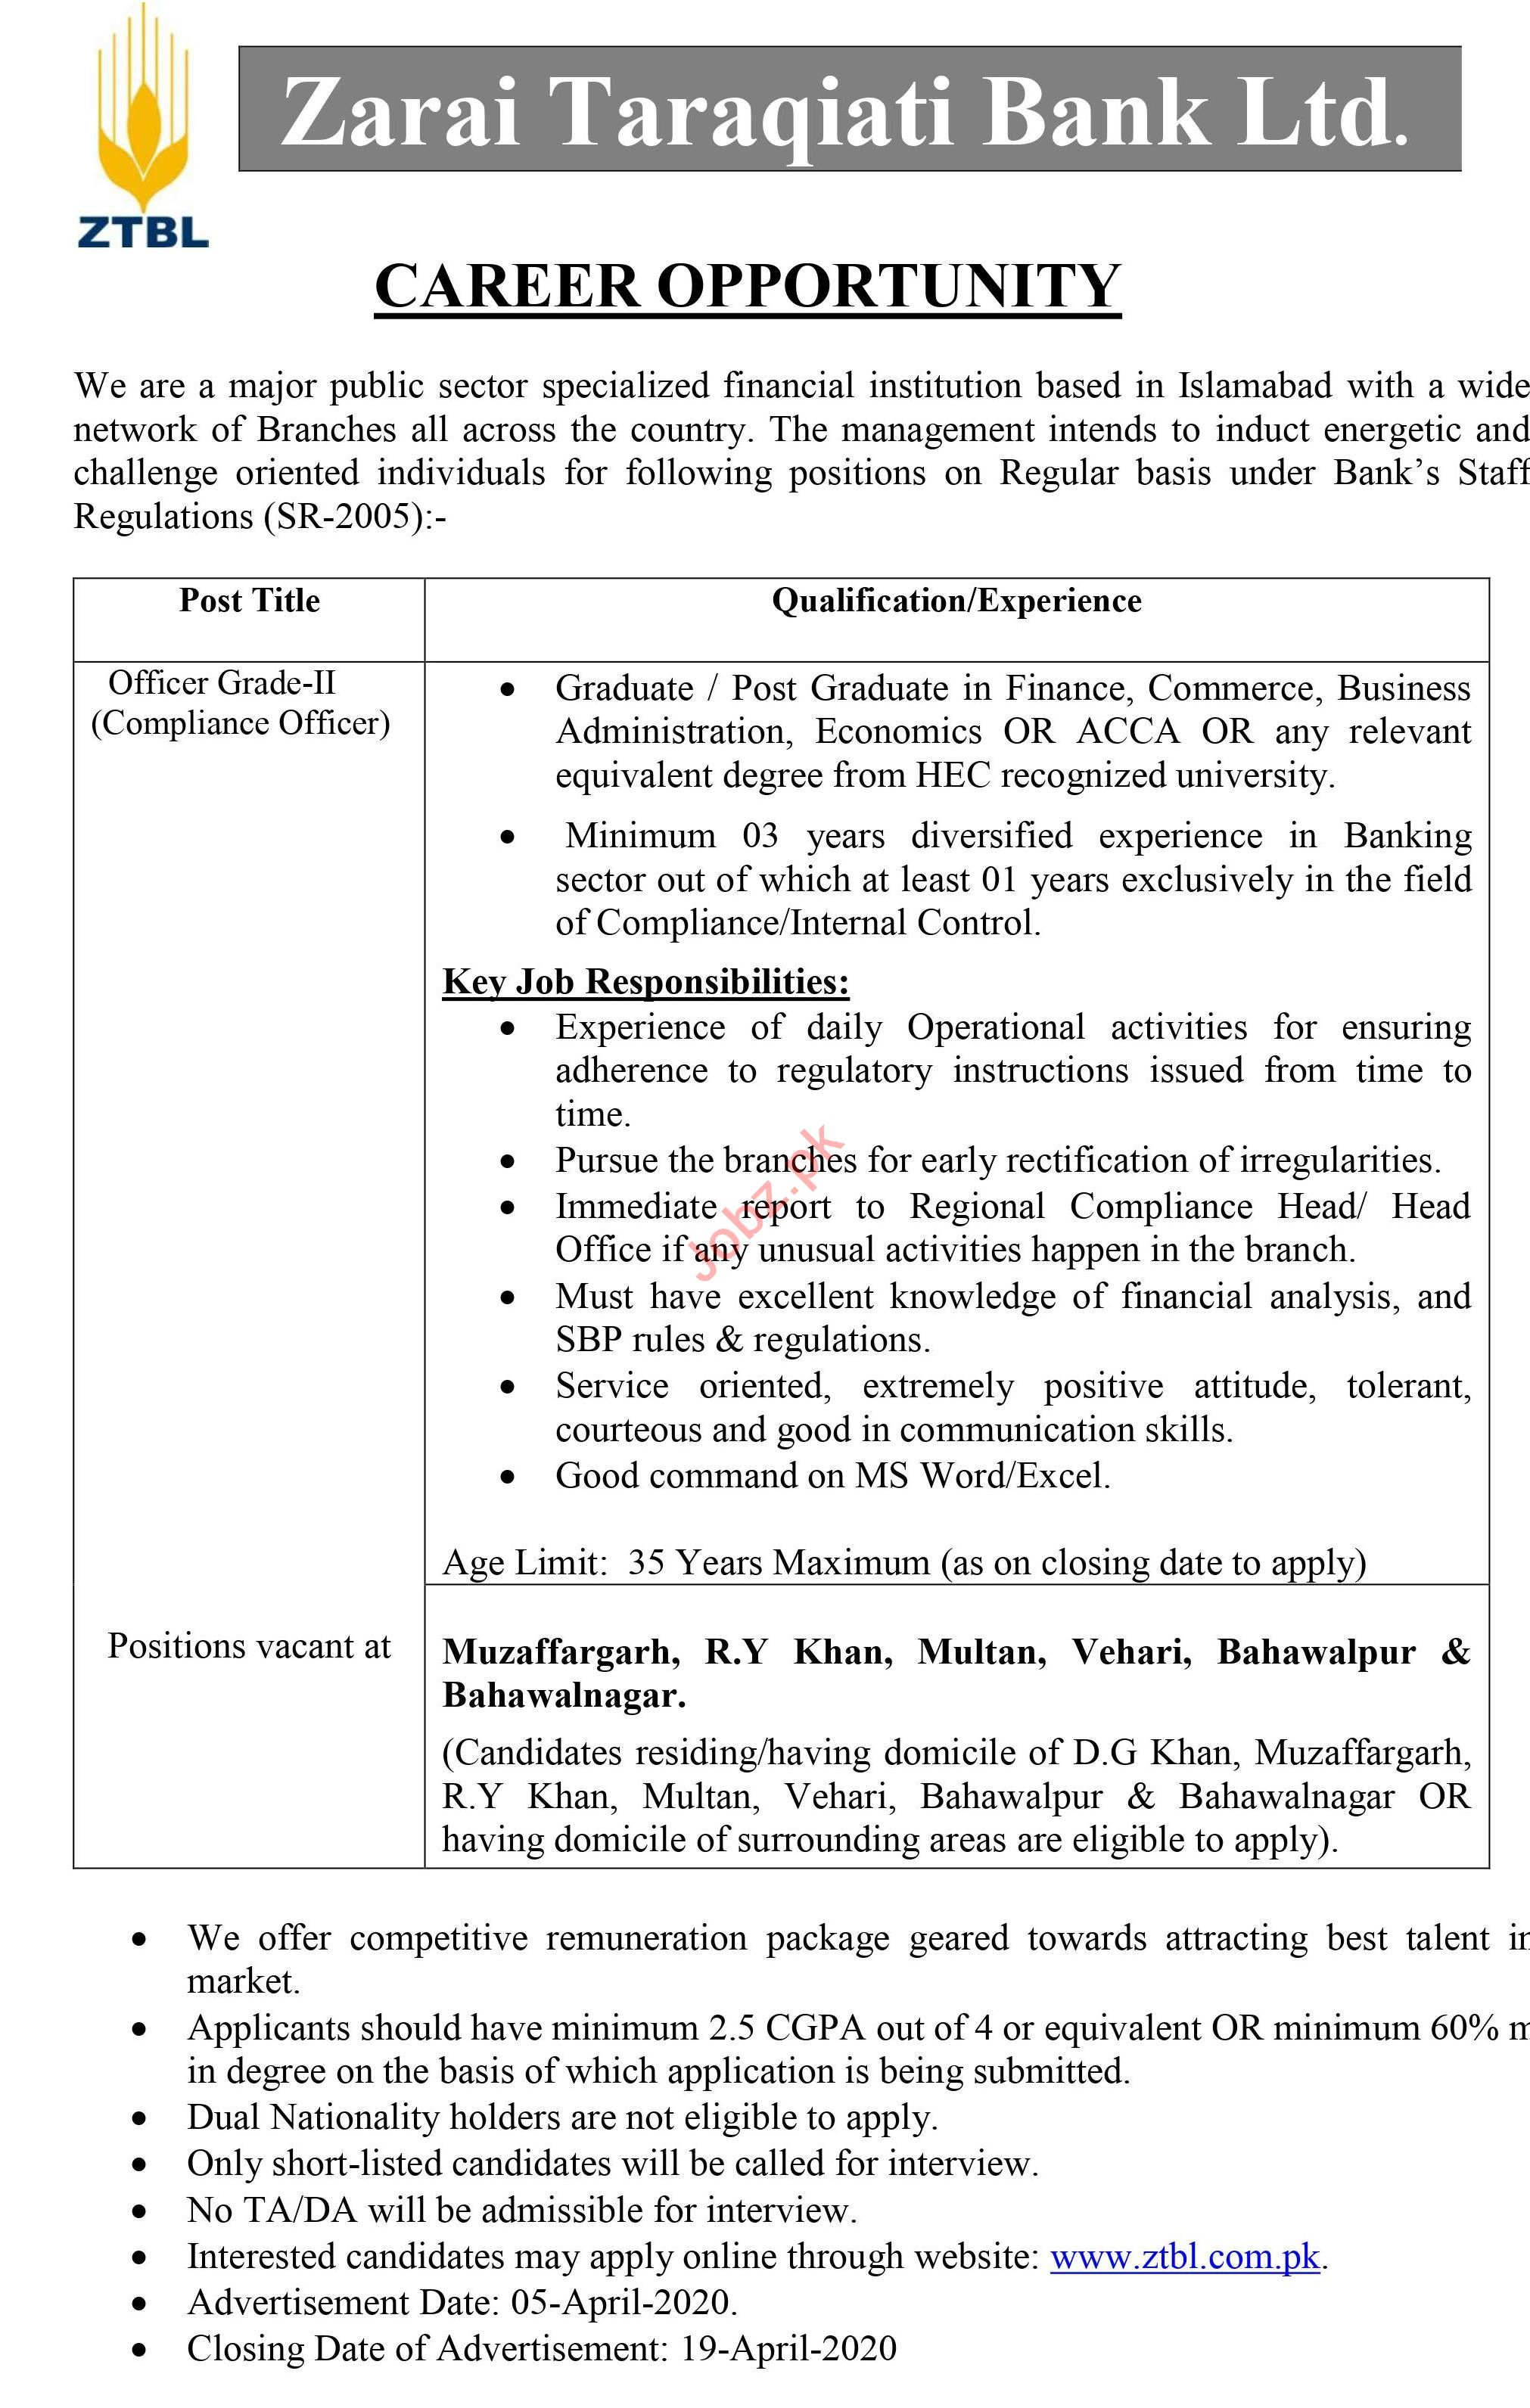 ZTBL Islamabad Jobs 2020 for Compliance Officer